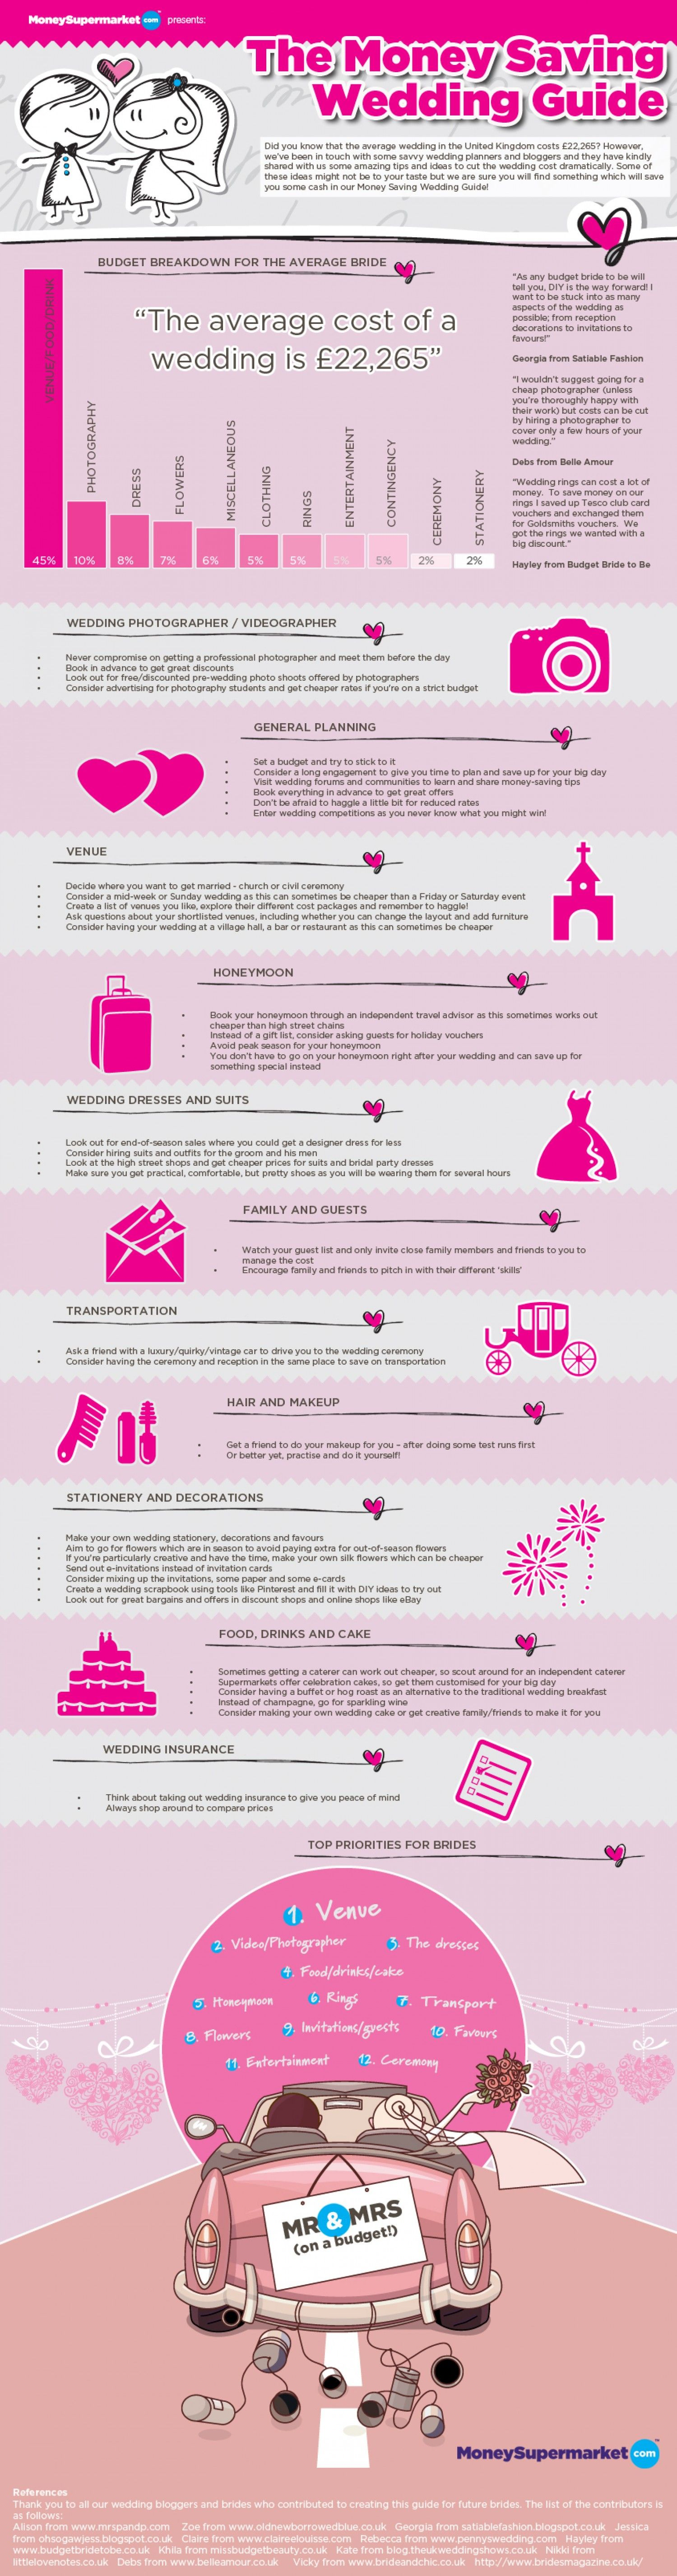 The Money Saving Wedding Guide Infographic  When